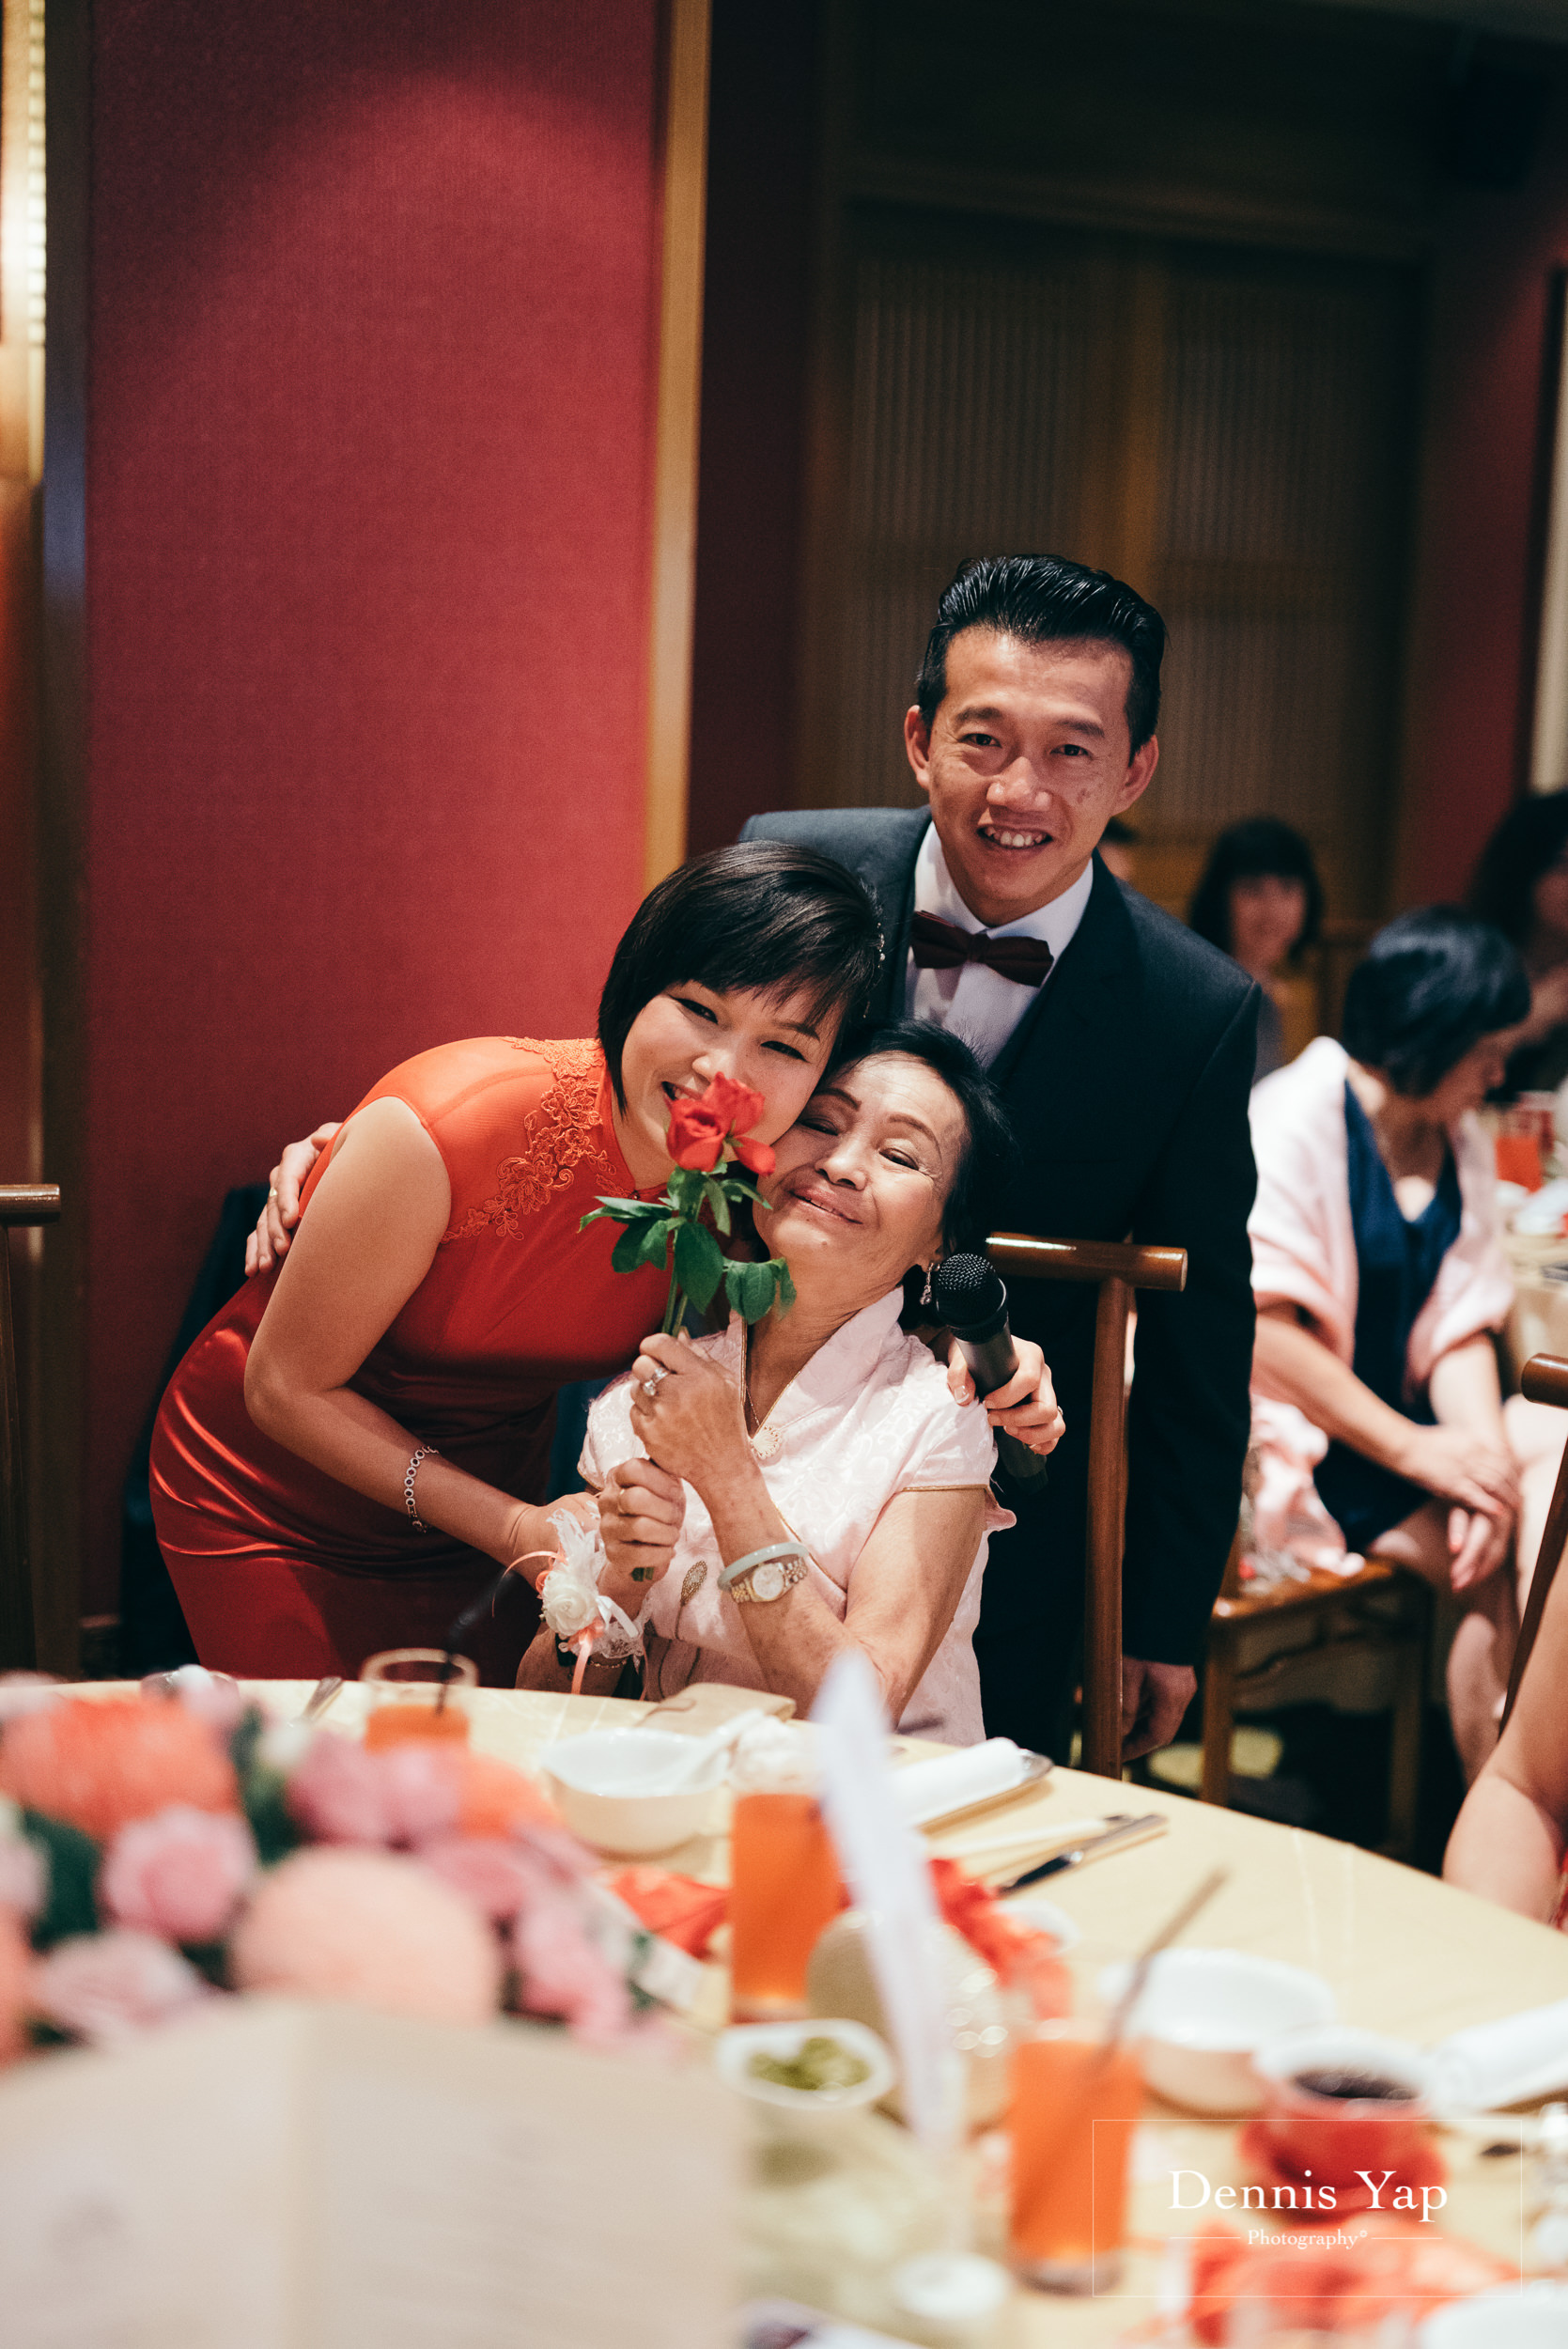 boon weng cyndy simple wedding gate crash luncheon shangrila kuala lumpur red traditional dennis yap photography-123.jpg